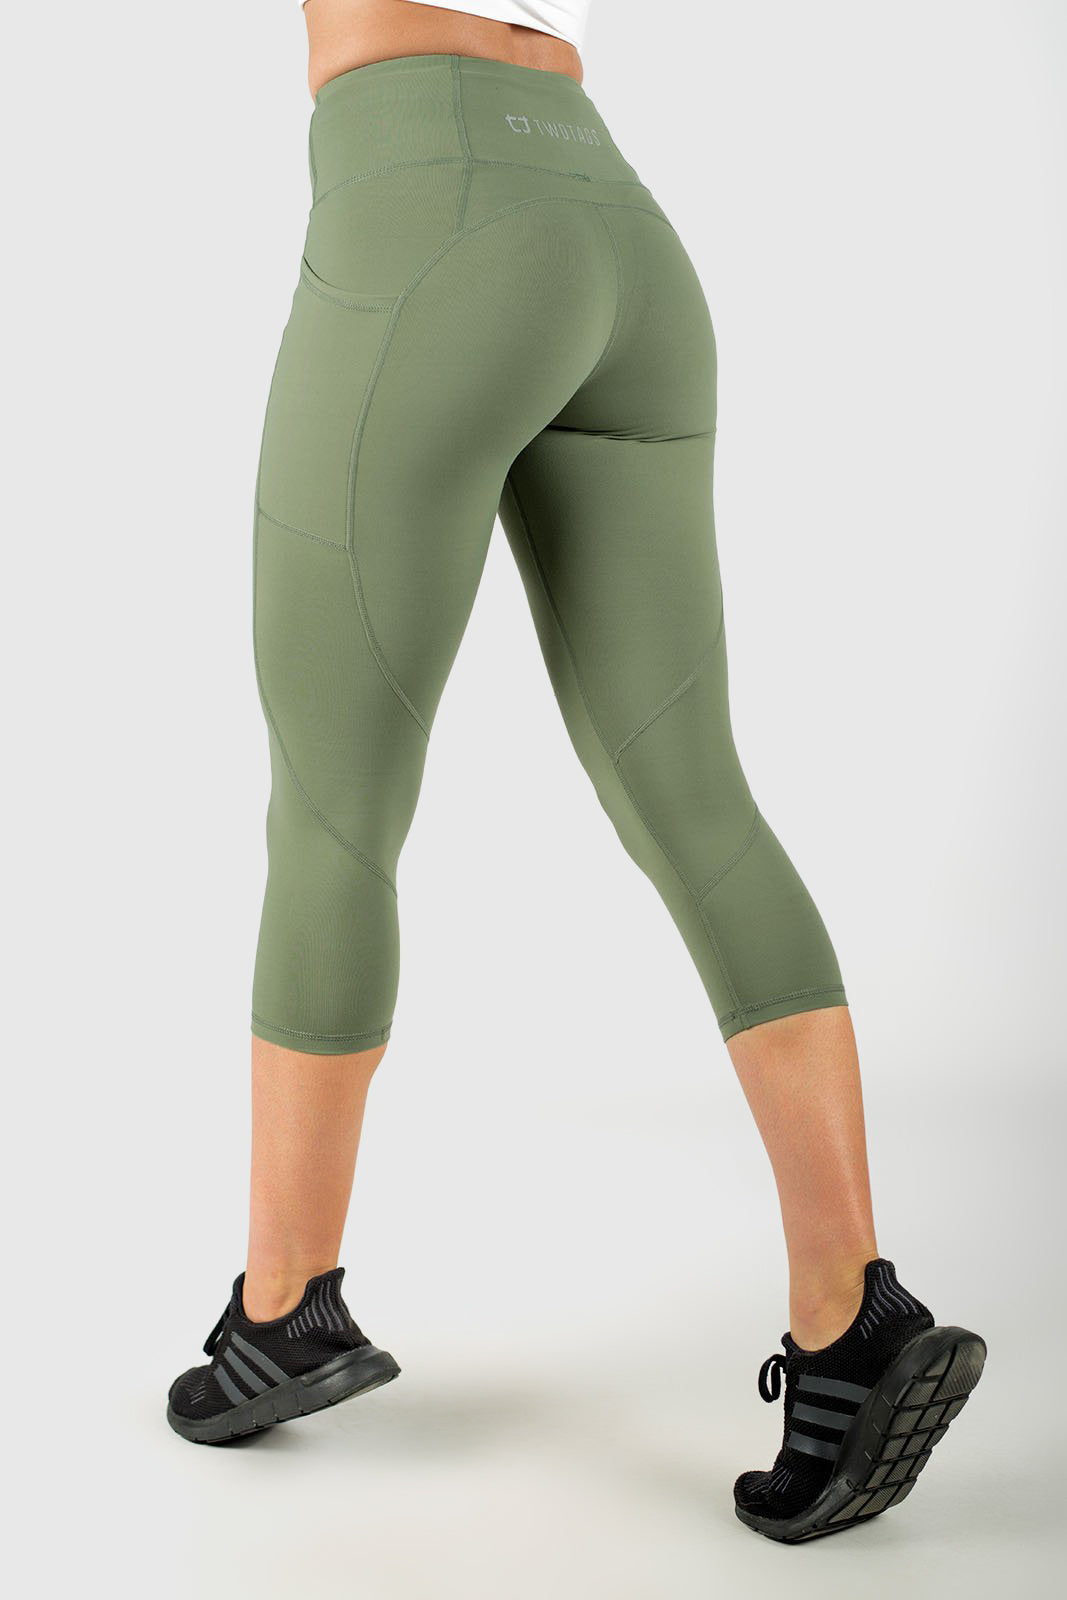 Twotags Ladies Highwaisted Sweetheart 7/8 Leggings – Olive